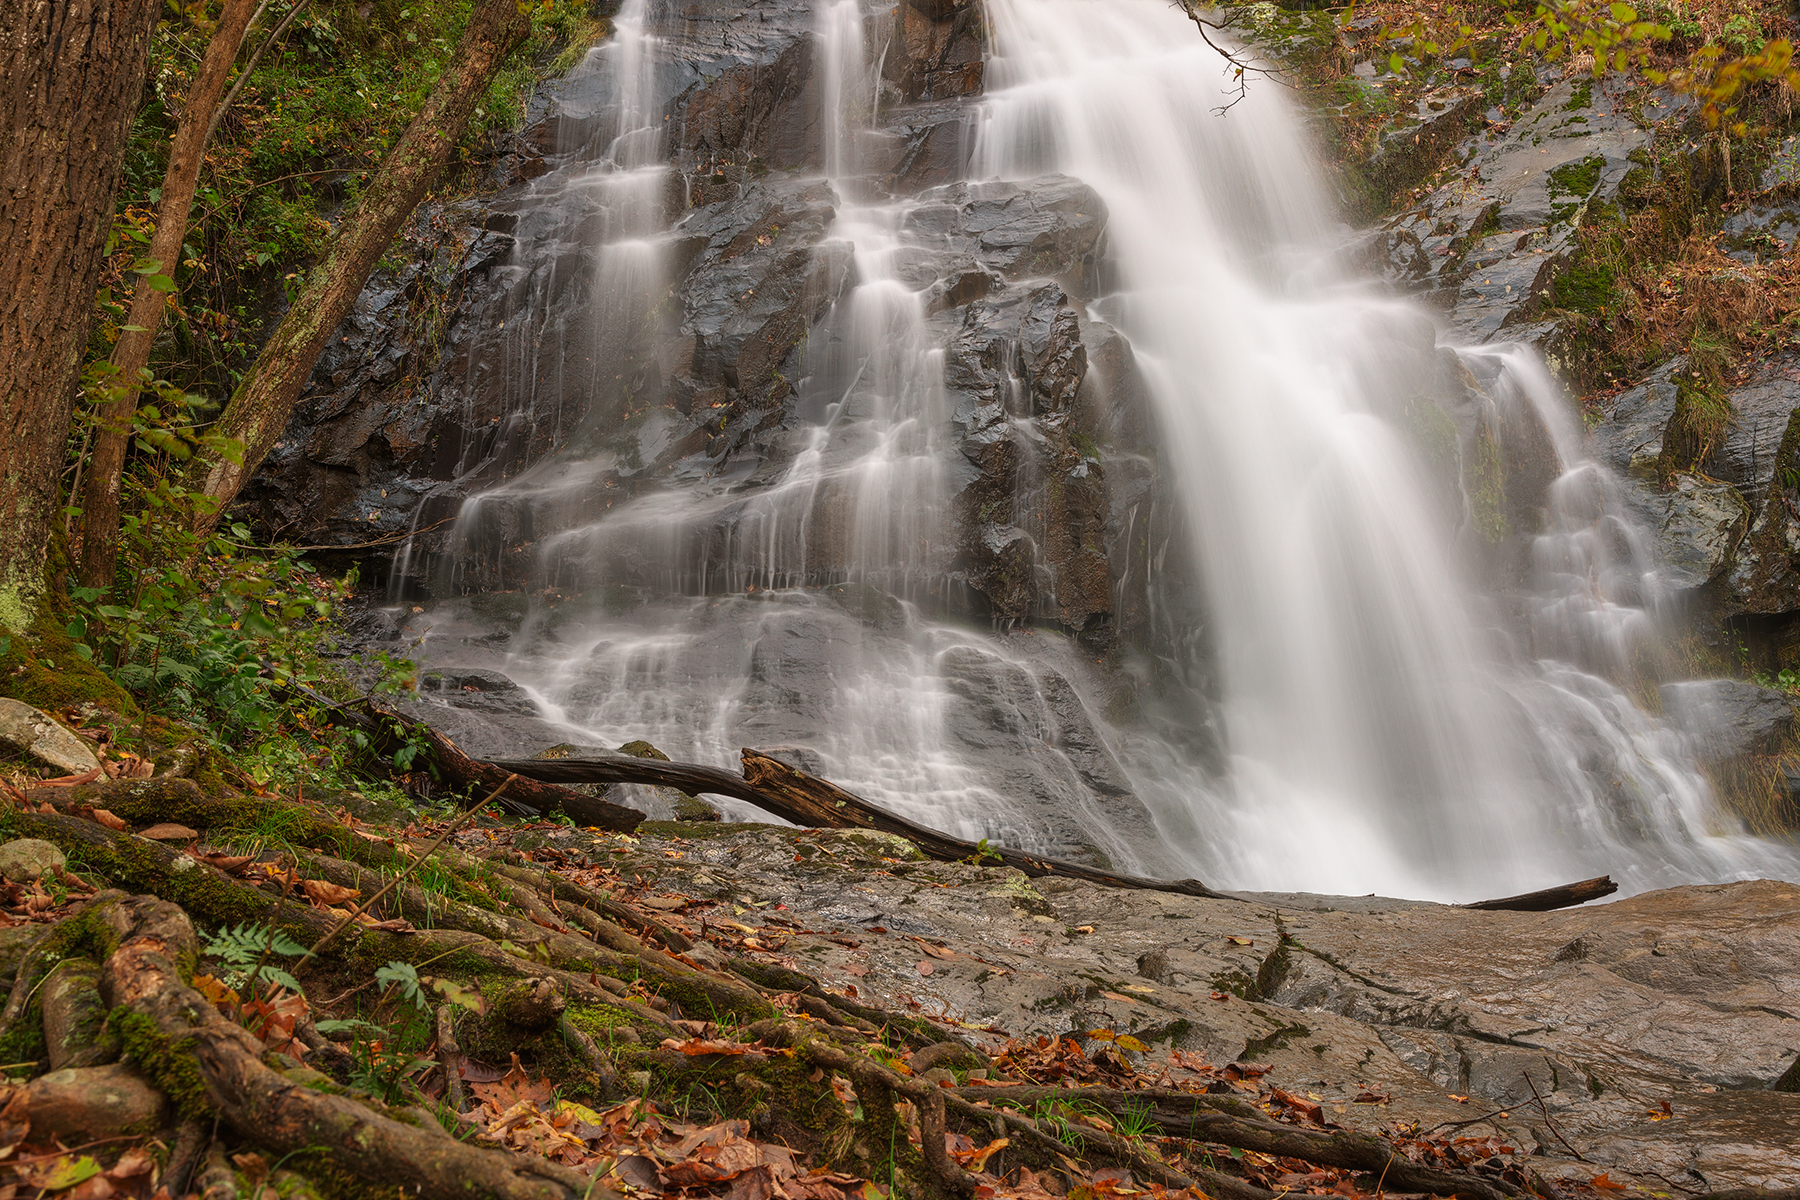 Jones run falls - hdr photo